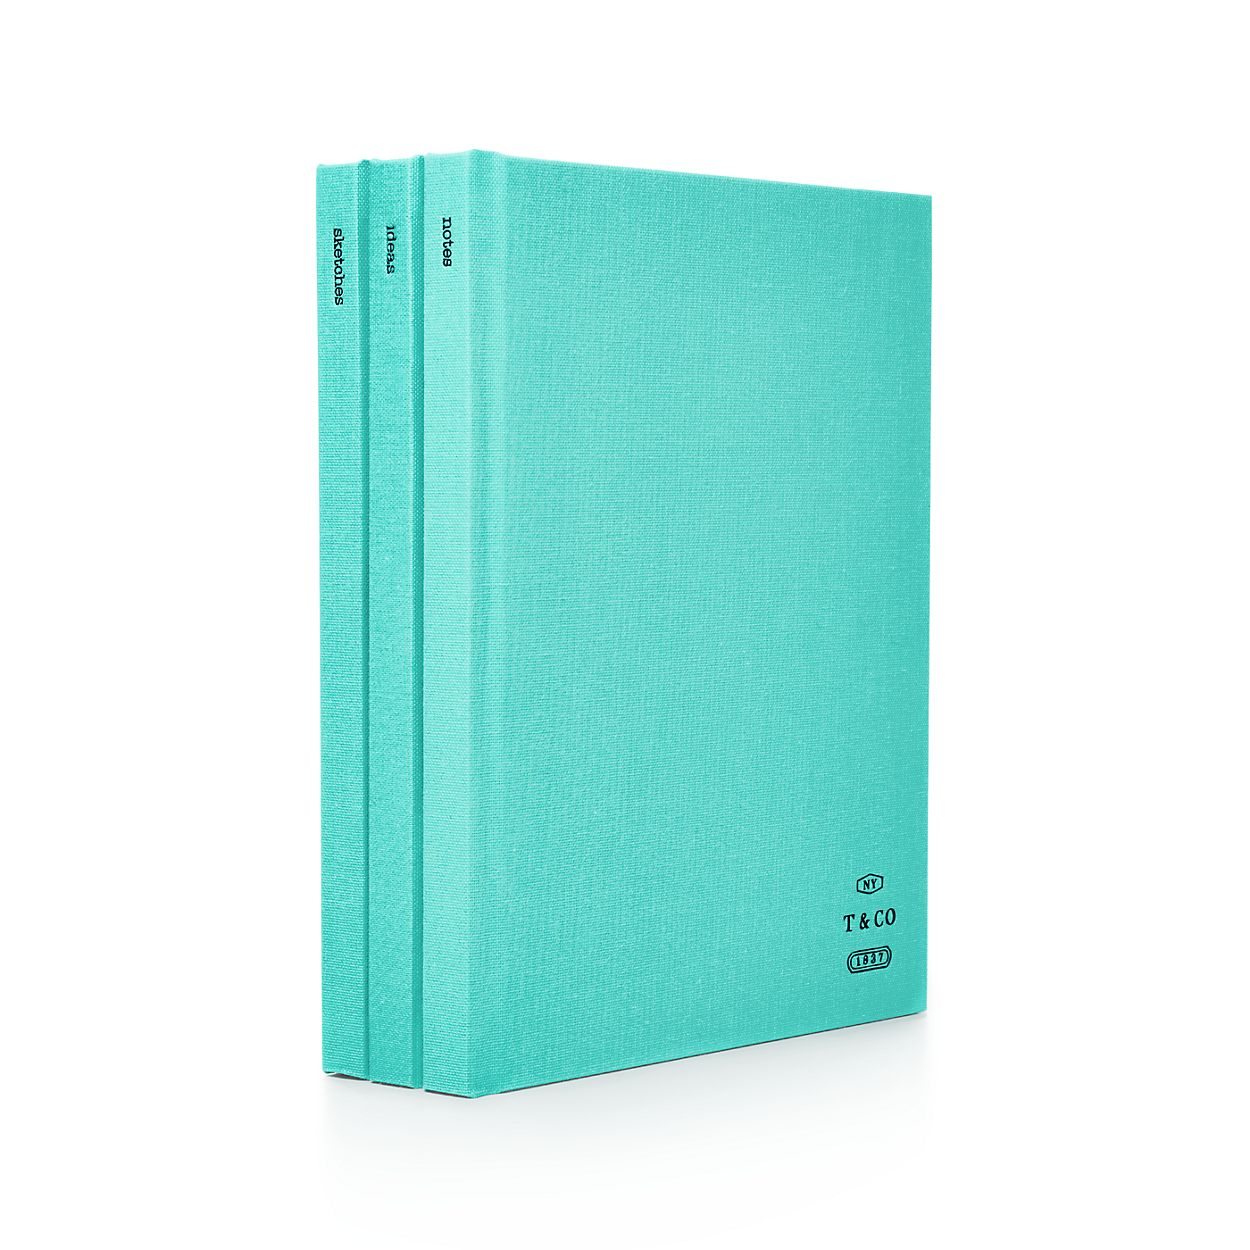 notebooks in bookcloth set of three tiffany co